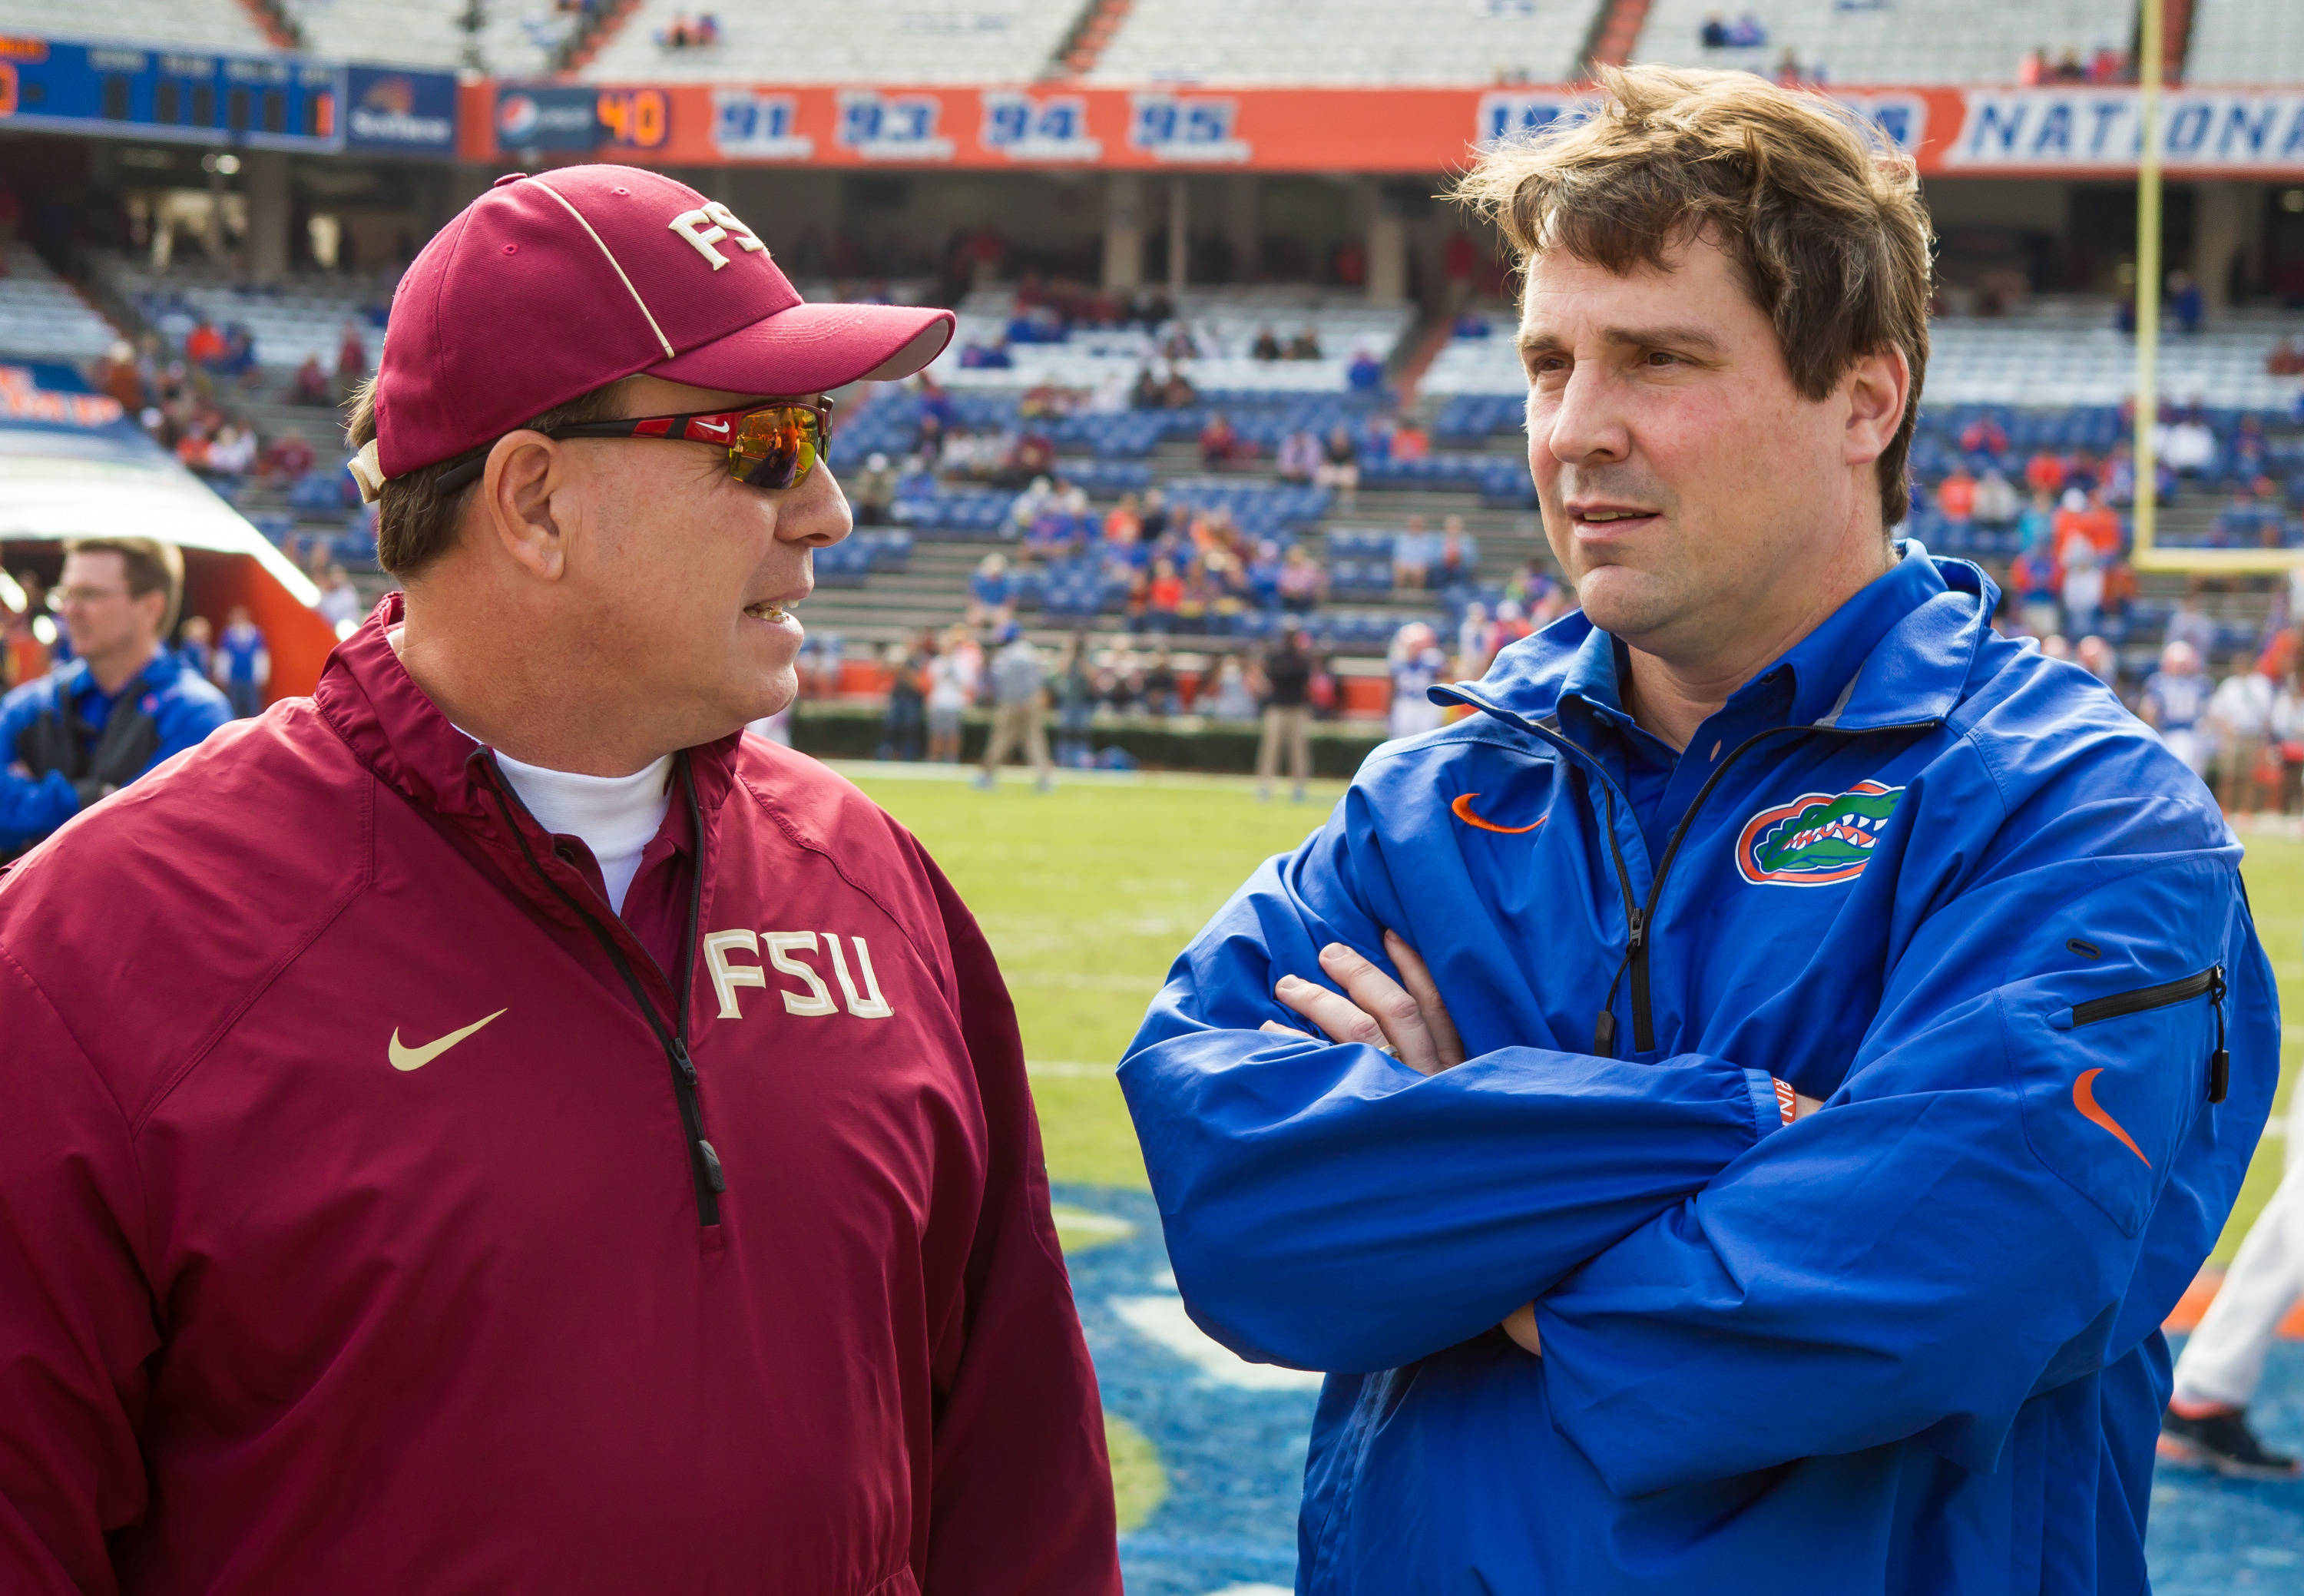 Jimbo Fisher with Gator Coach Will Muschamp